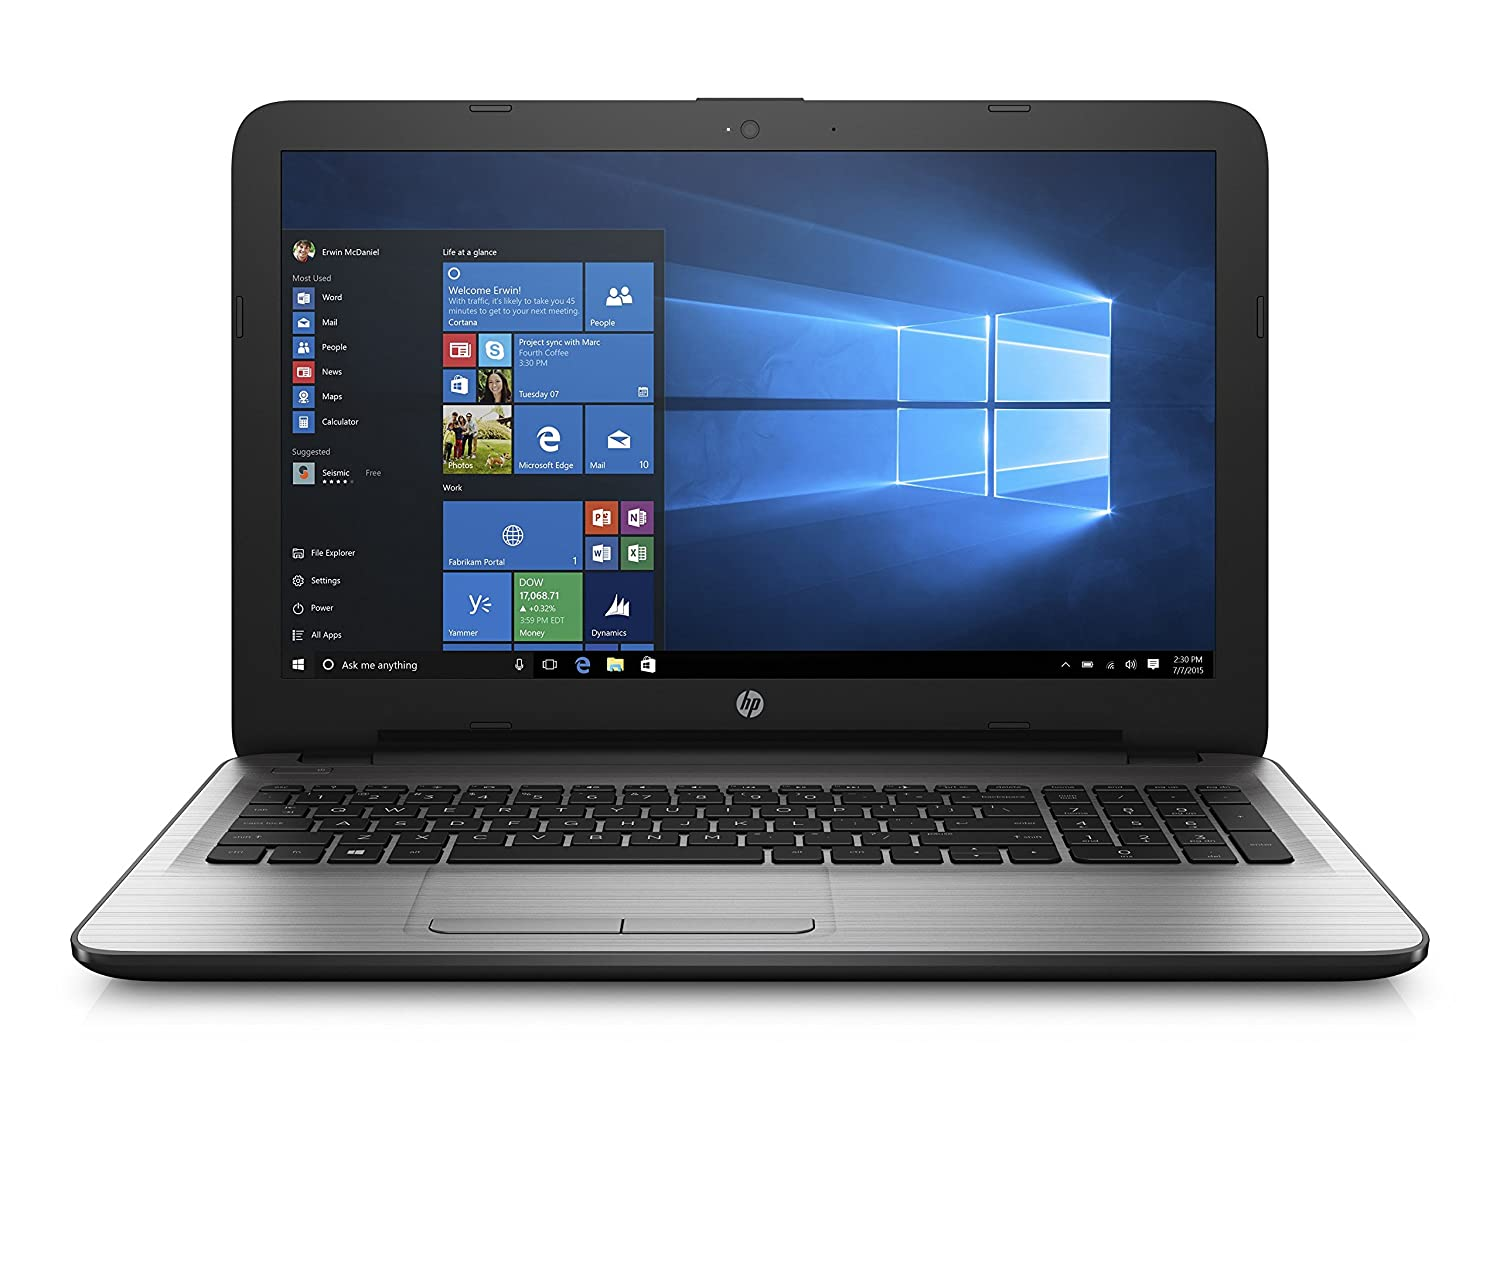 HP 15-ay018nr 15.6-Inch Laptop (Intel Core i7, 8GB RAM, 256GB...